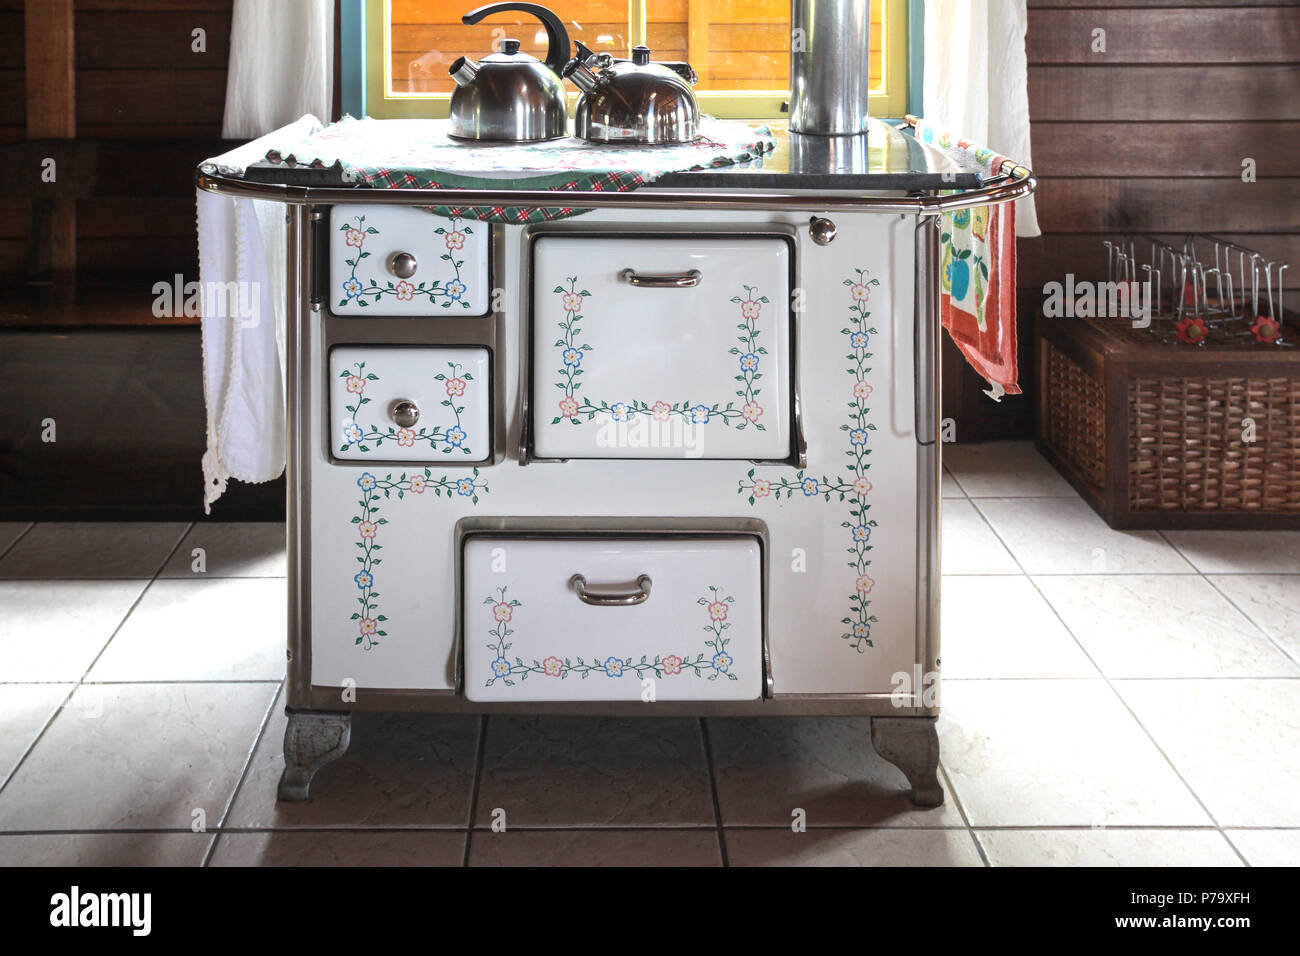 Santa Catarina, Brazil. Old fashioned stove with kettles in a rustic kitchen chalet. - Stock Image